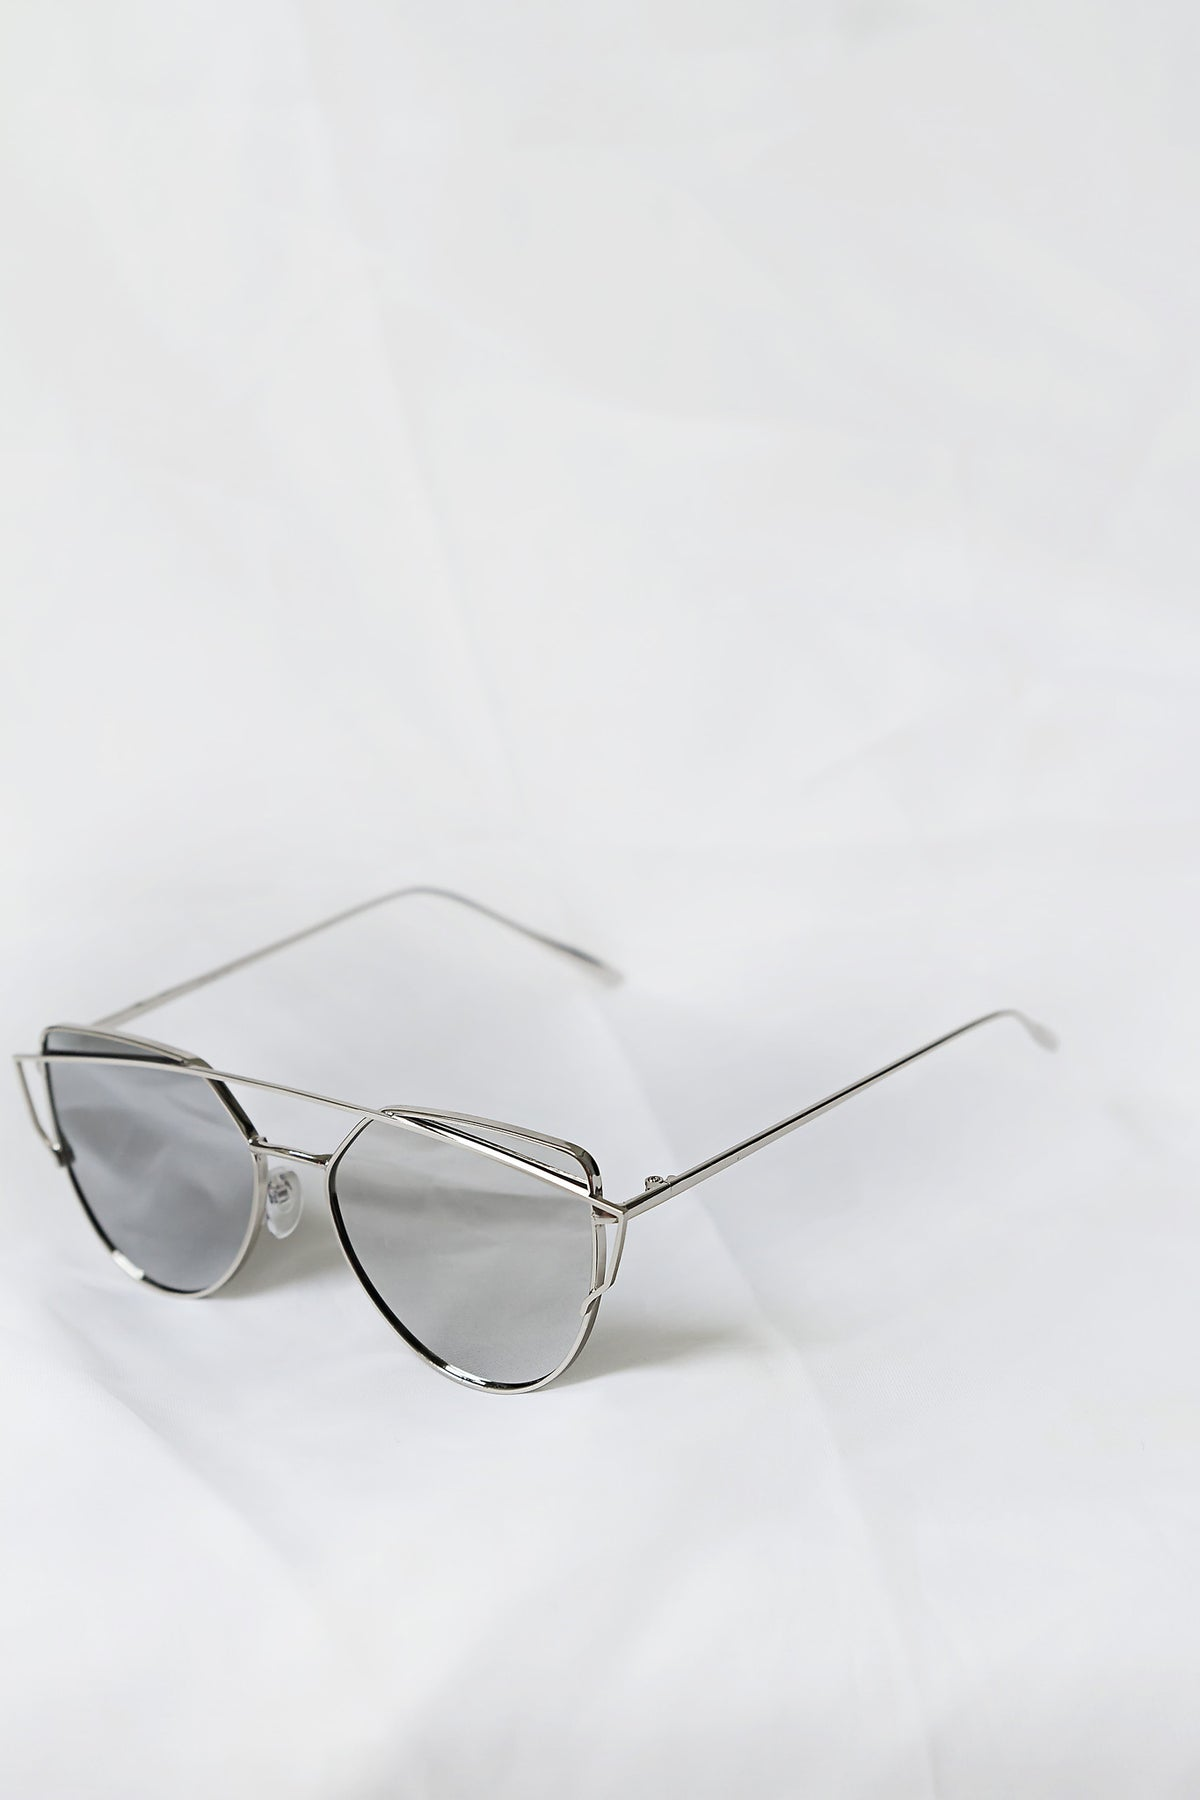 Glamour Silver Sunglasses - House of W